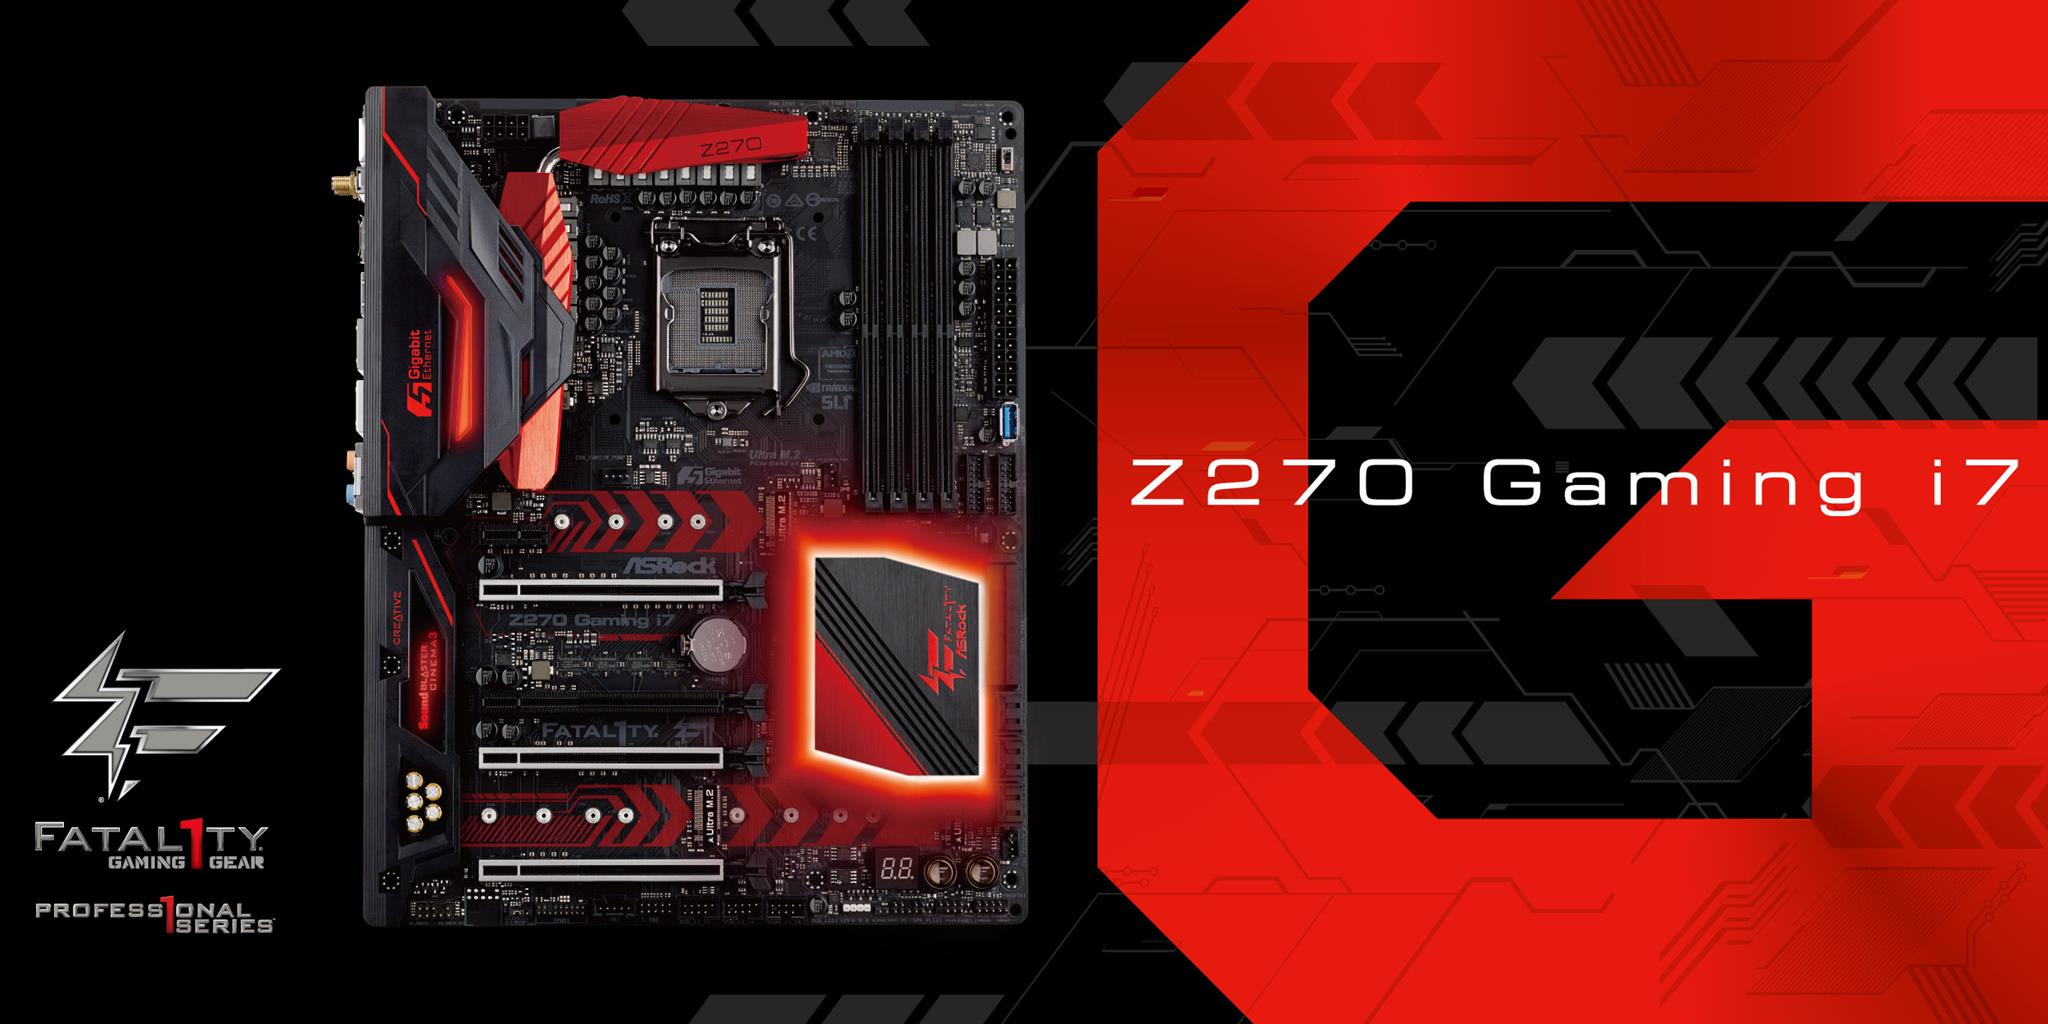 own-the-game_z270-gaming-i7